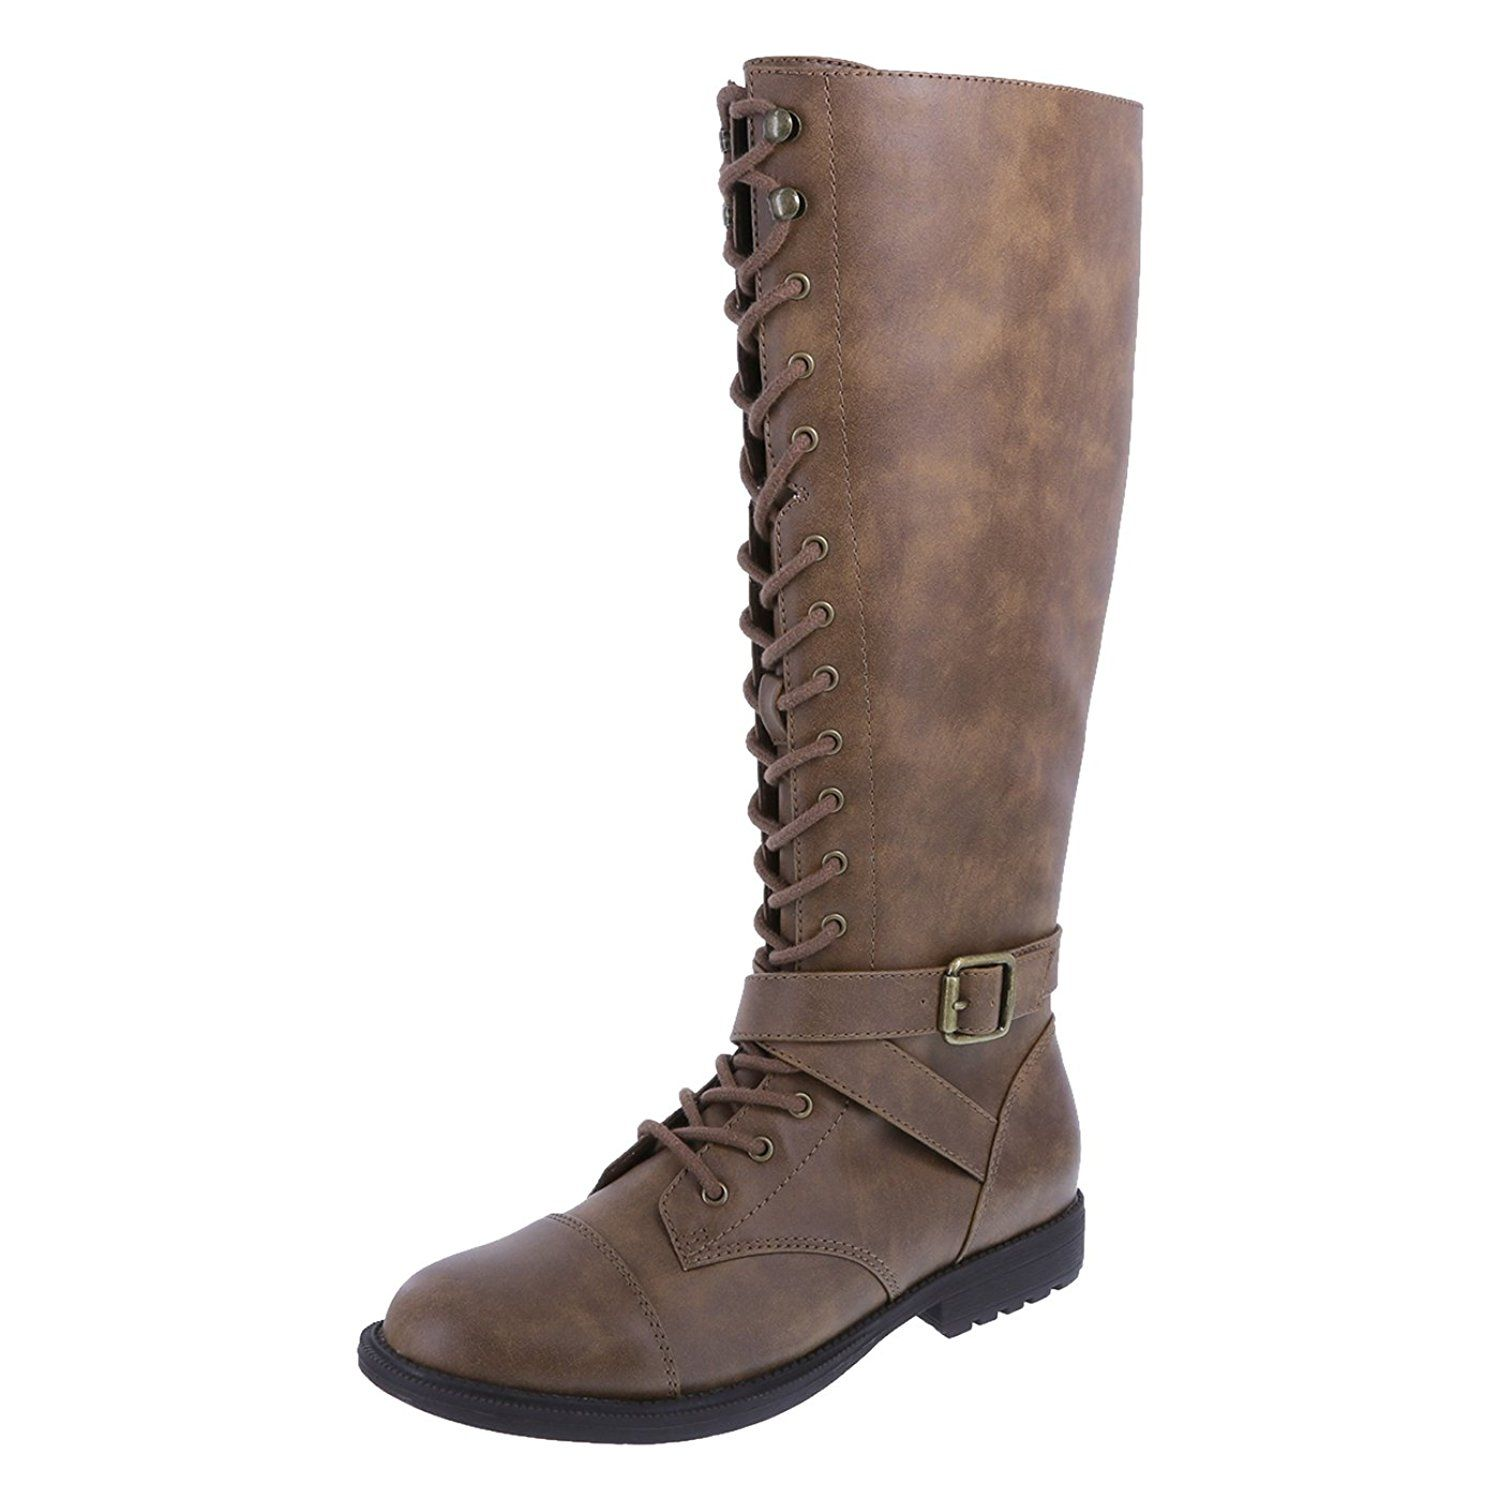 Boots, Womens combat boots